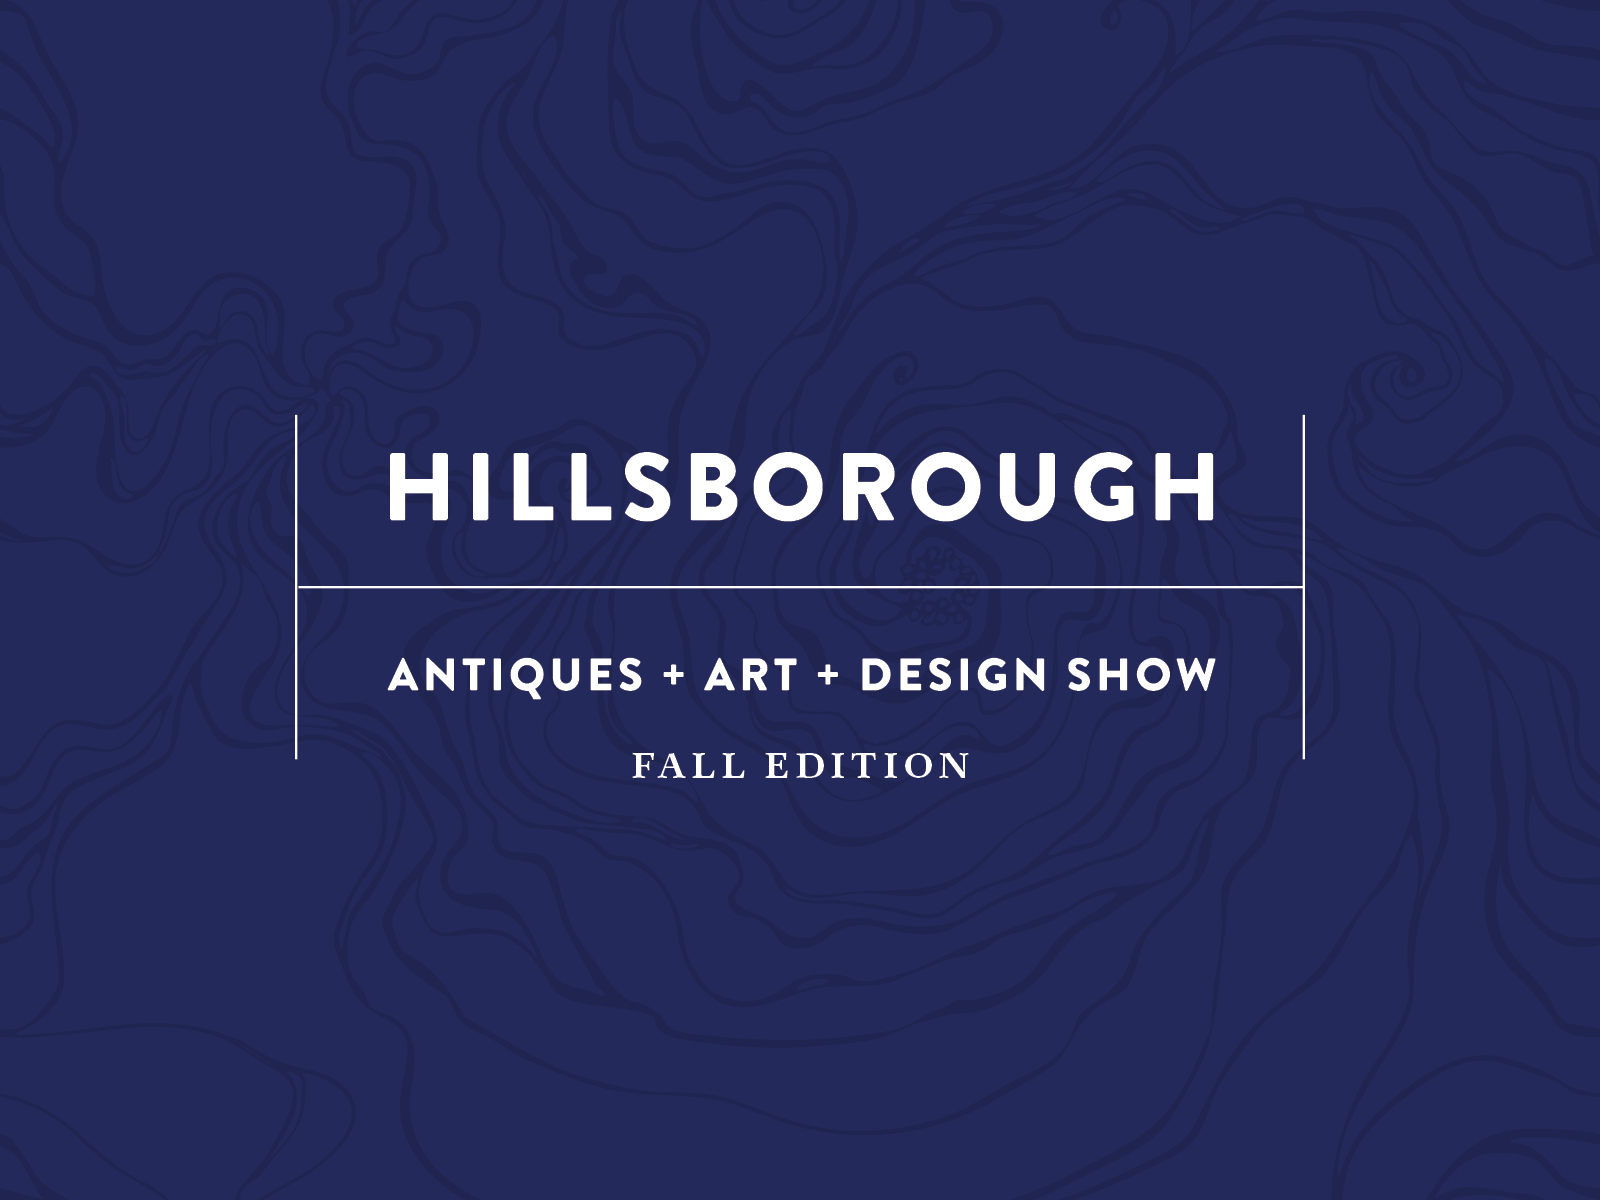 Hillsborough Antiques + Art + Design Show: Fall Edition